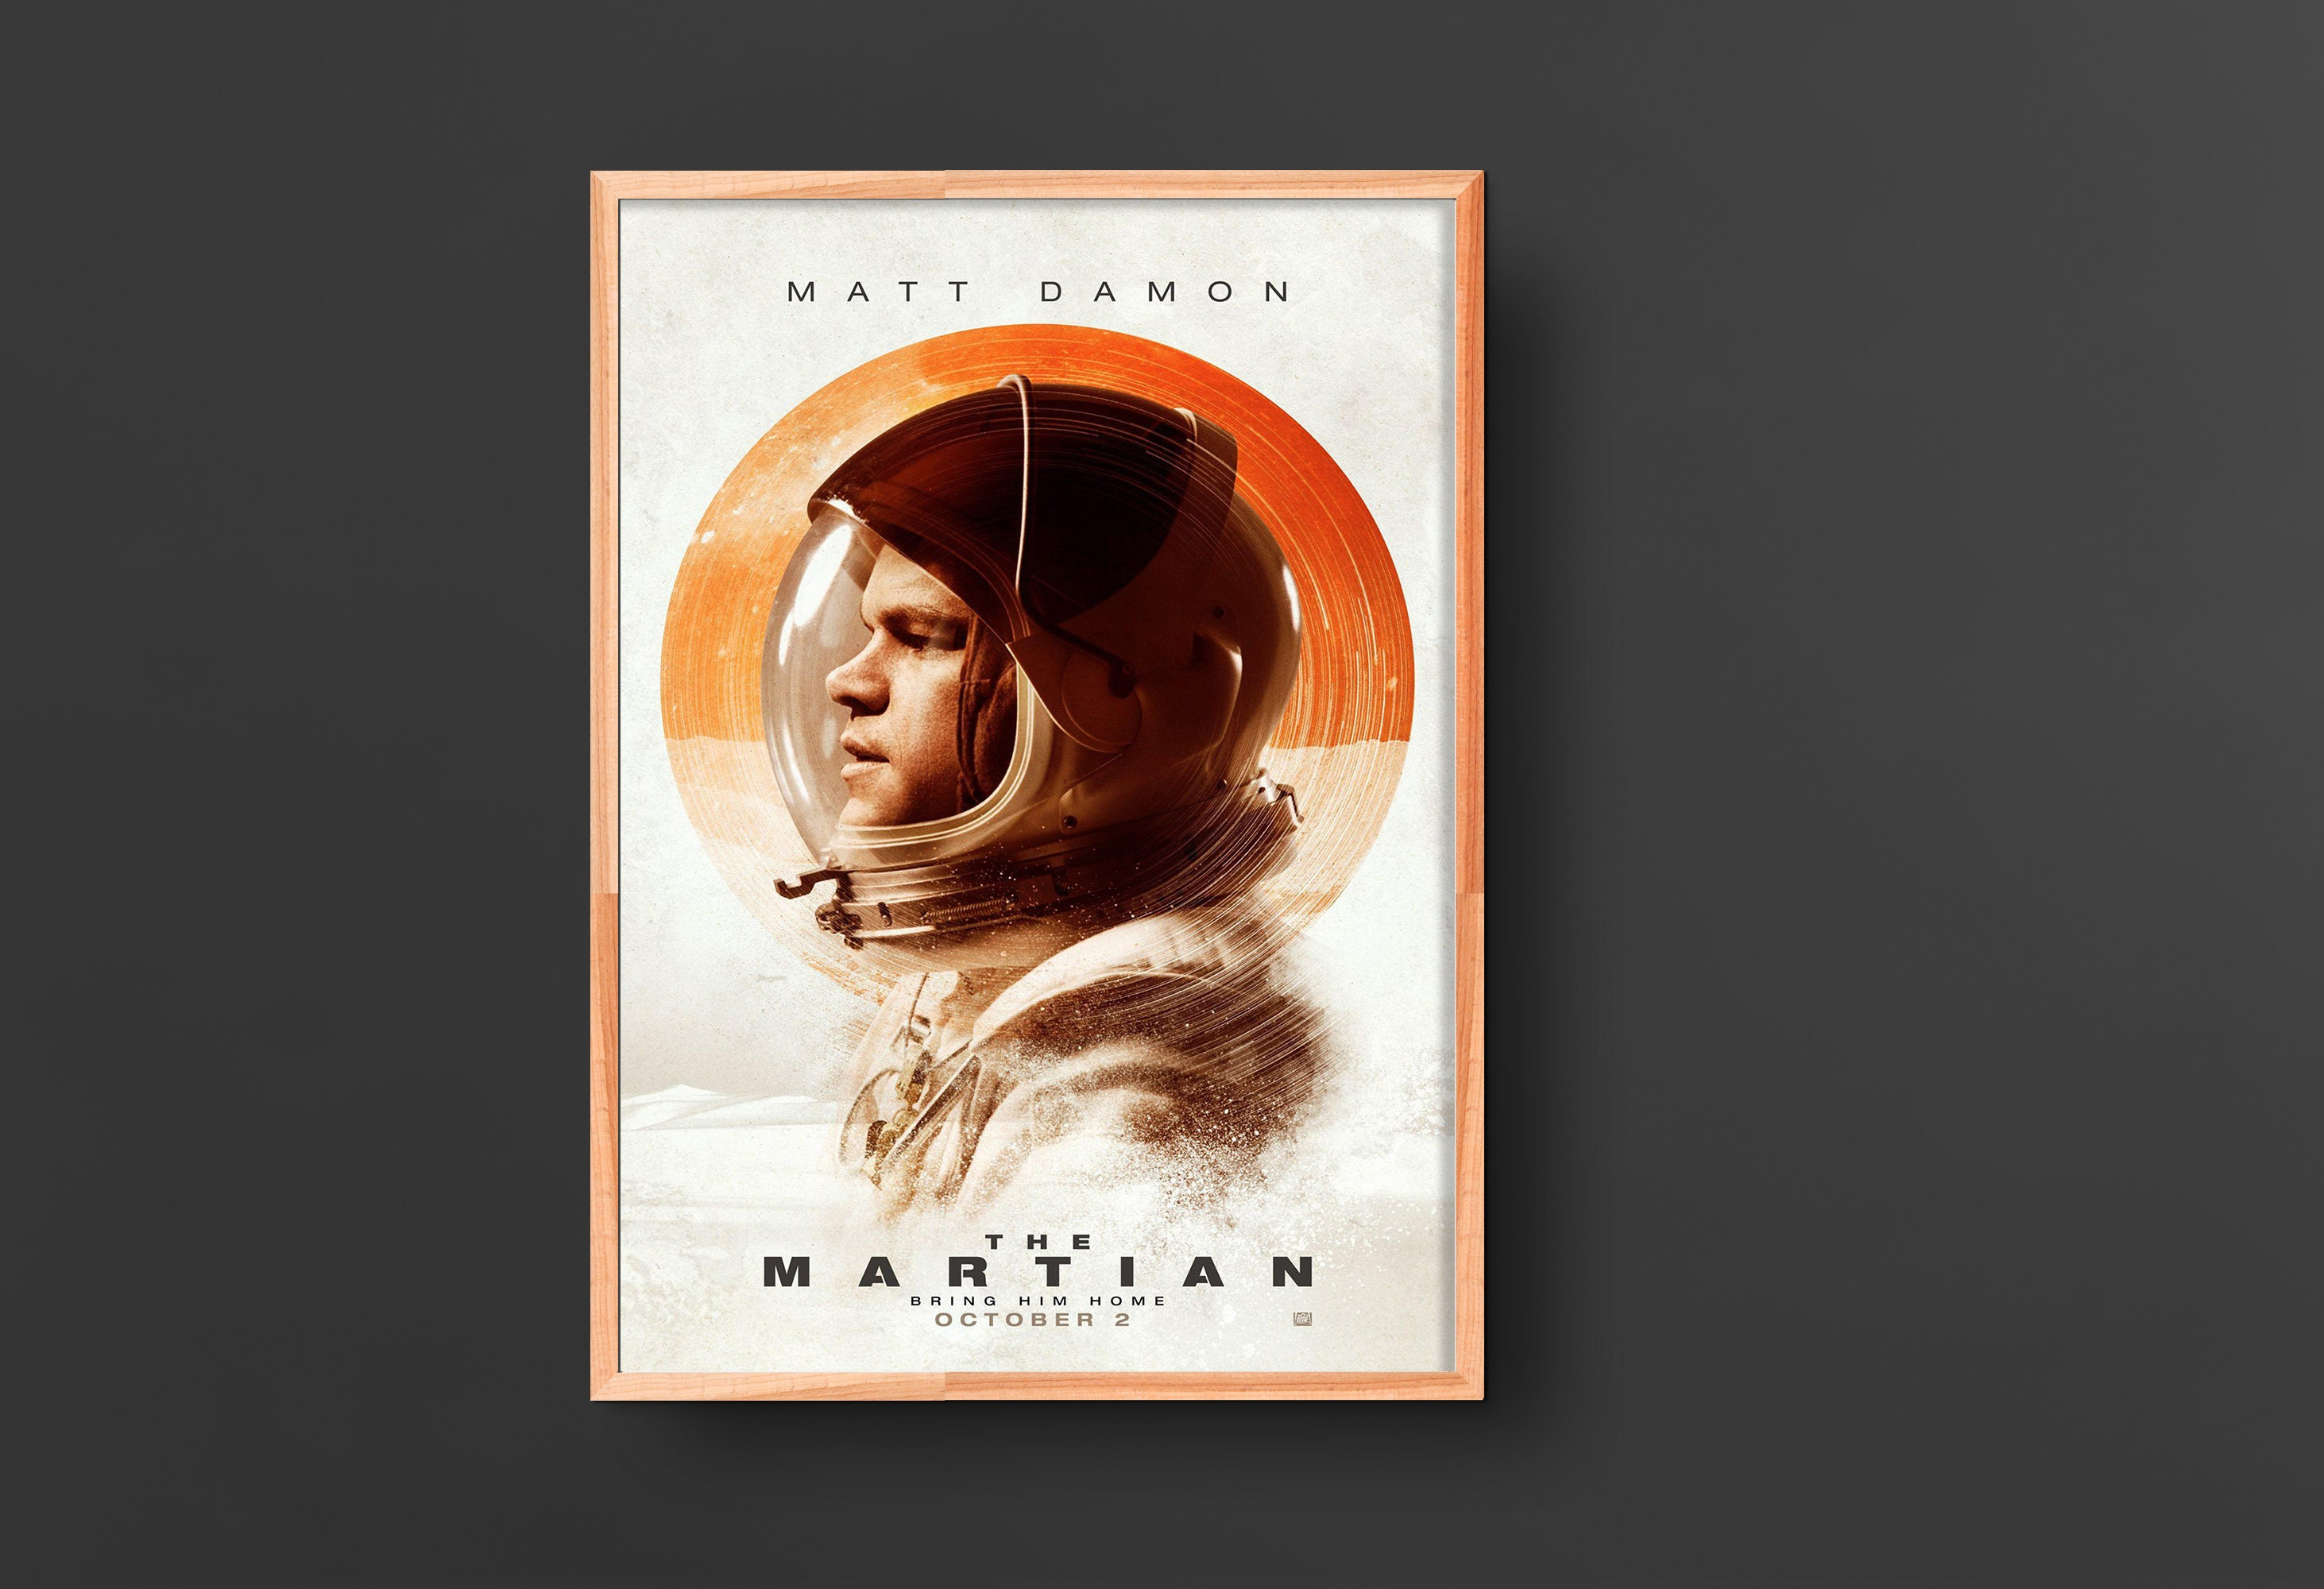 The Martian Movie Poster 2015